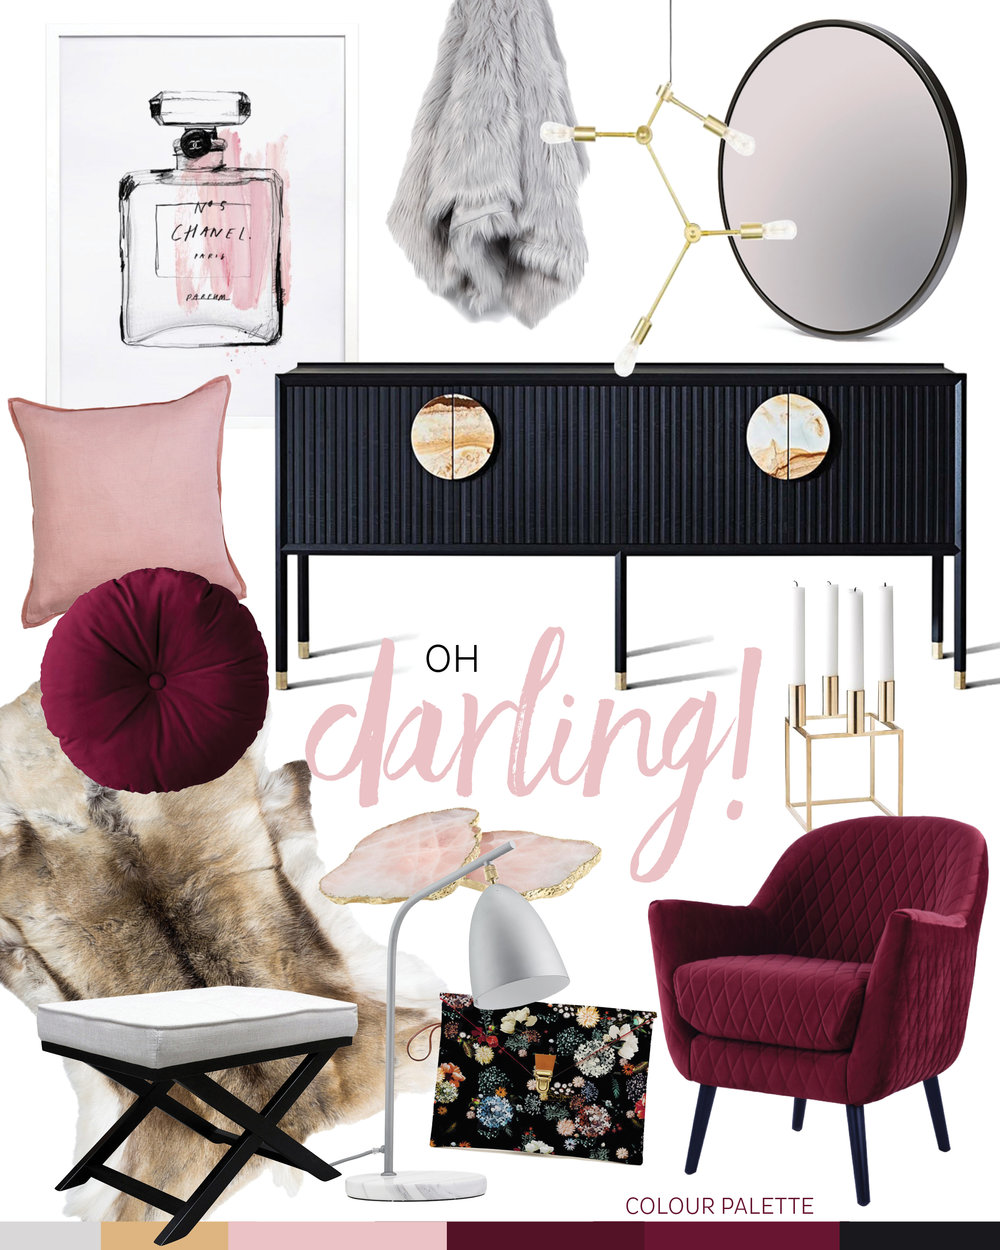 TREND: OH DARLING!